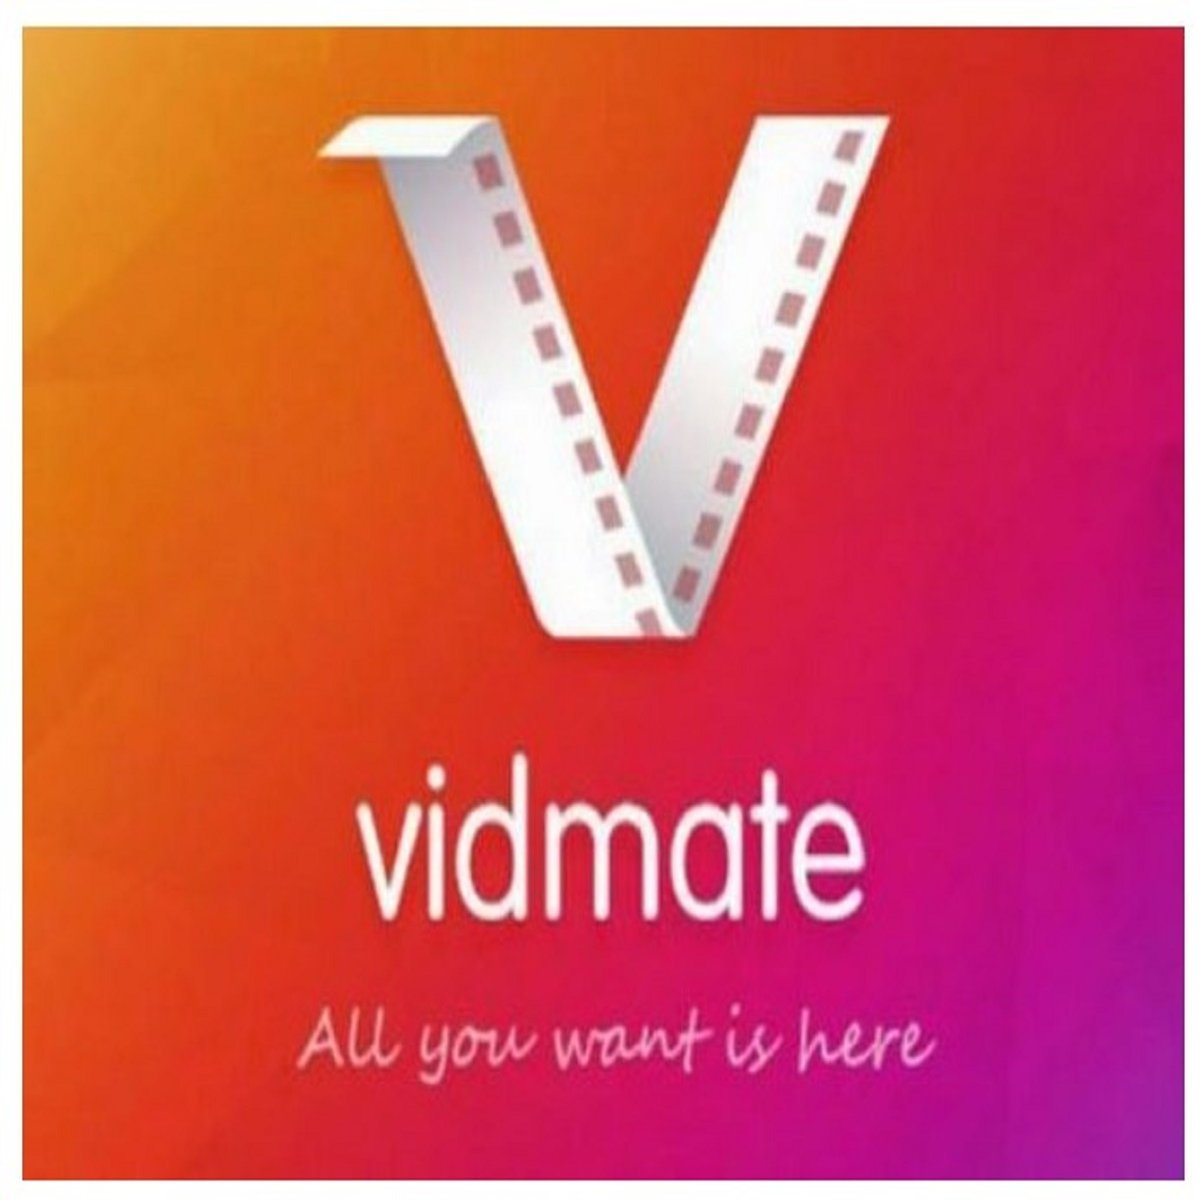 Make Sure To Get The Latest Vidmate Download For Android